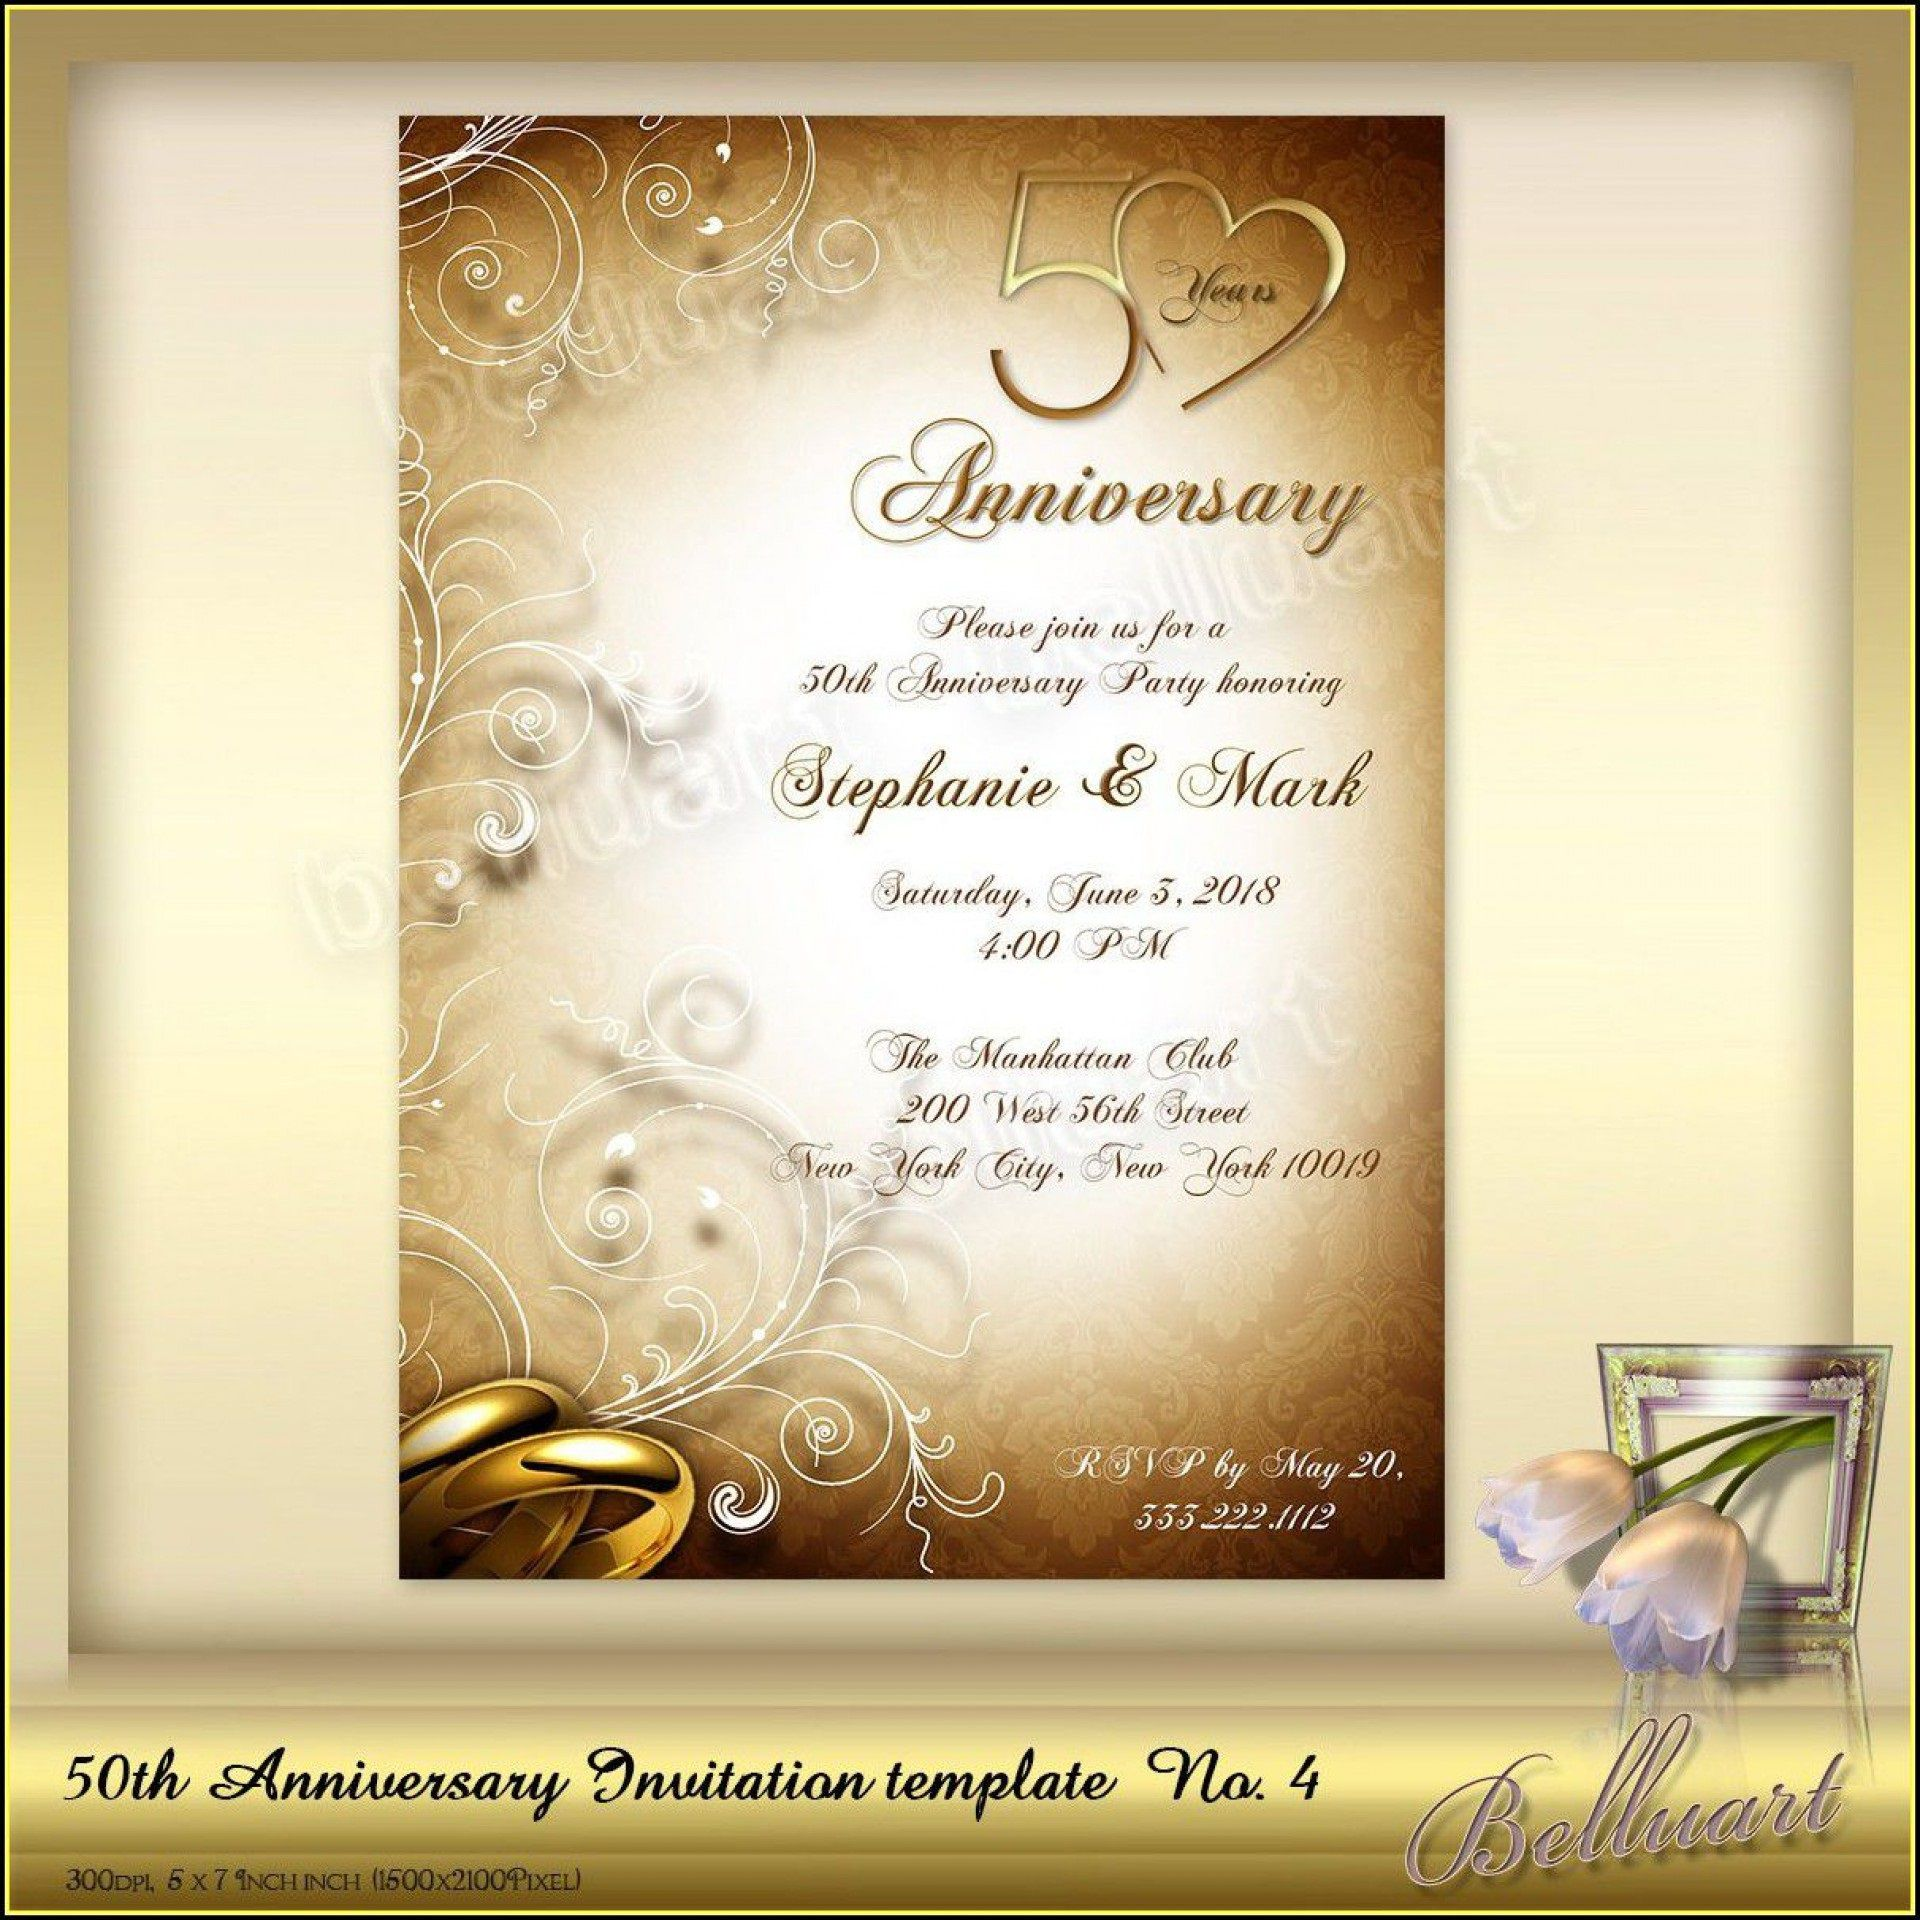 002 Top 50th Anniversary Invitation Template High Def  Templates Wedding Free Download GoldenFull